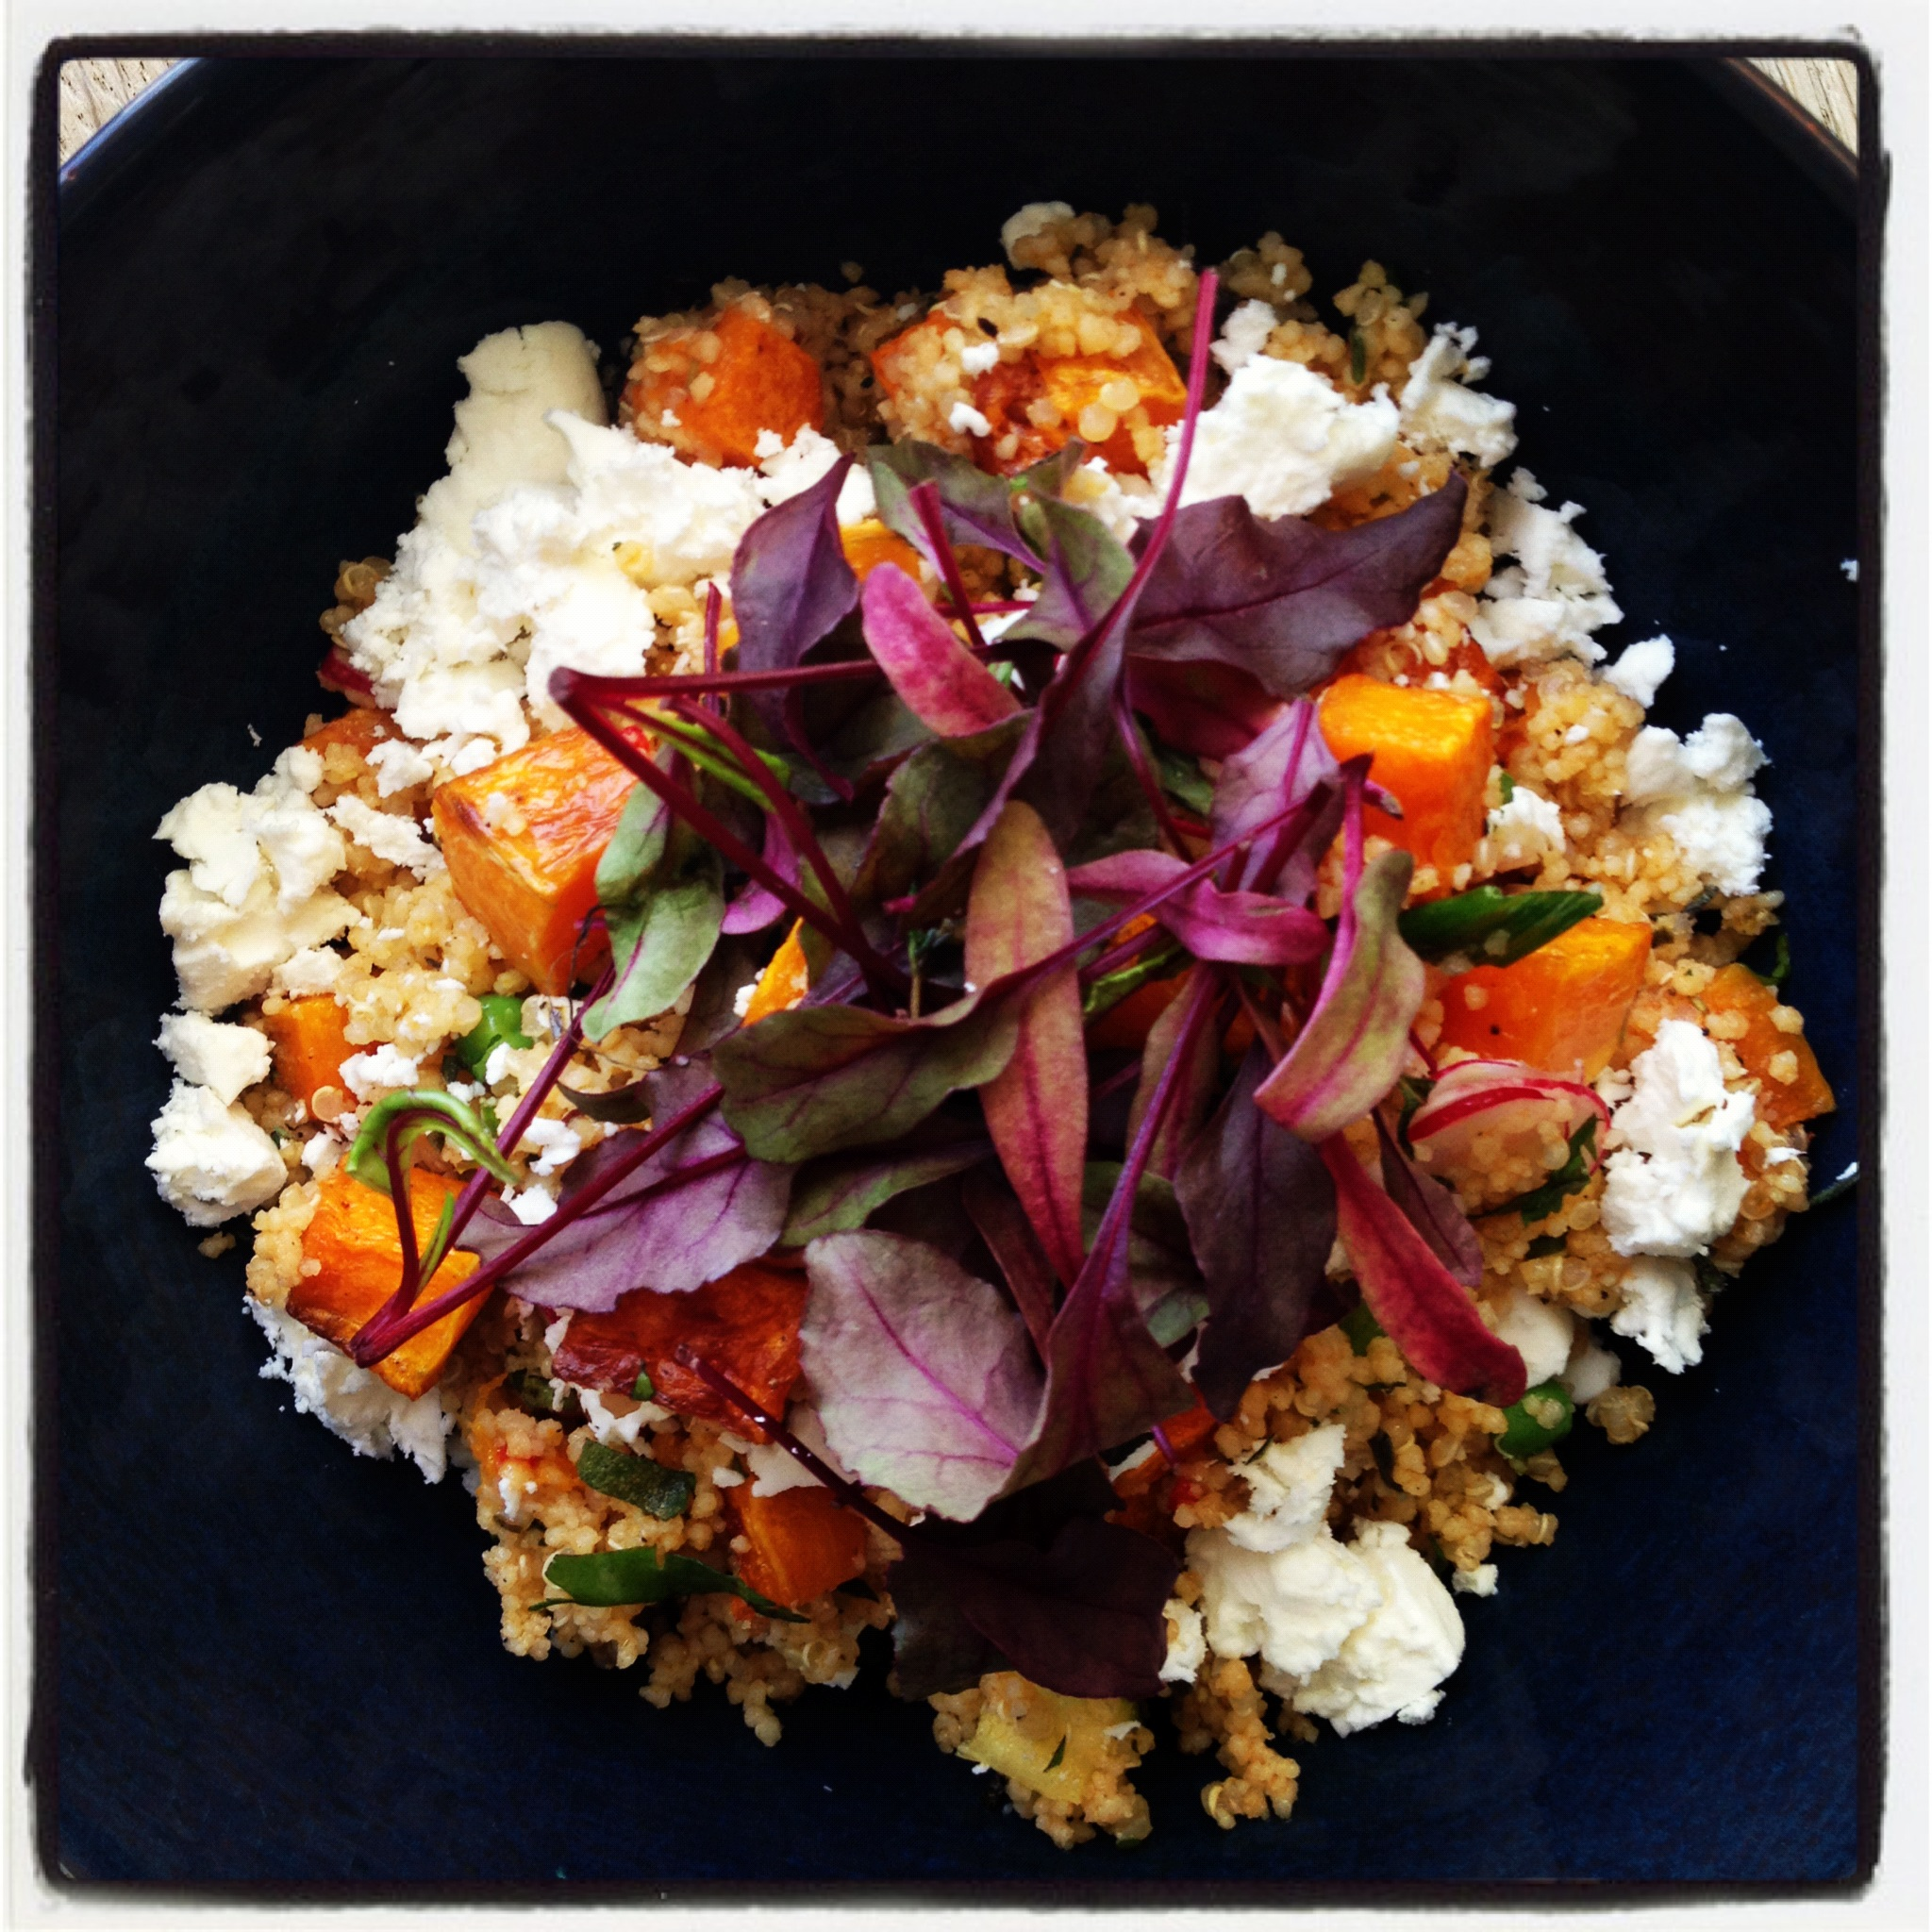 Warm Autumnal quinoa salad